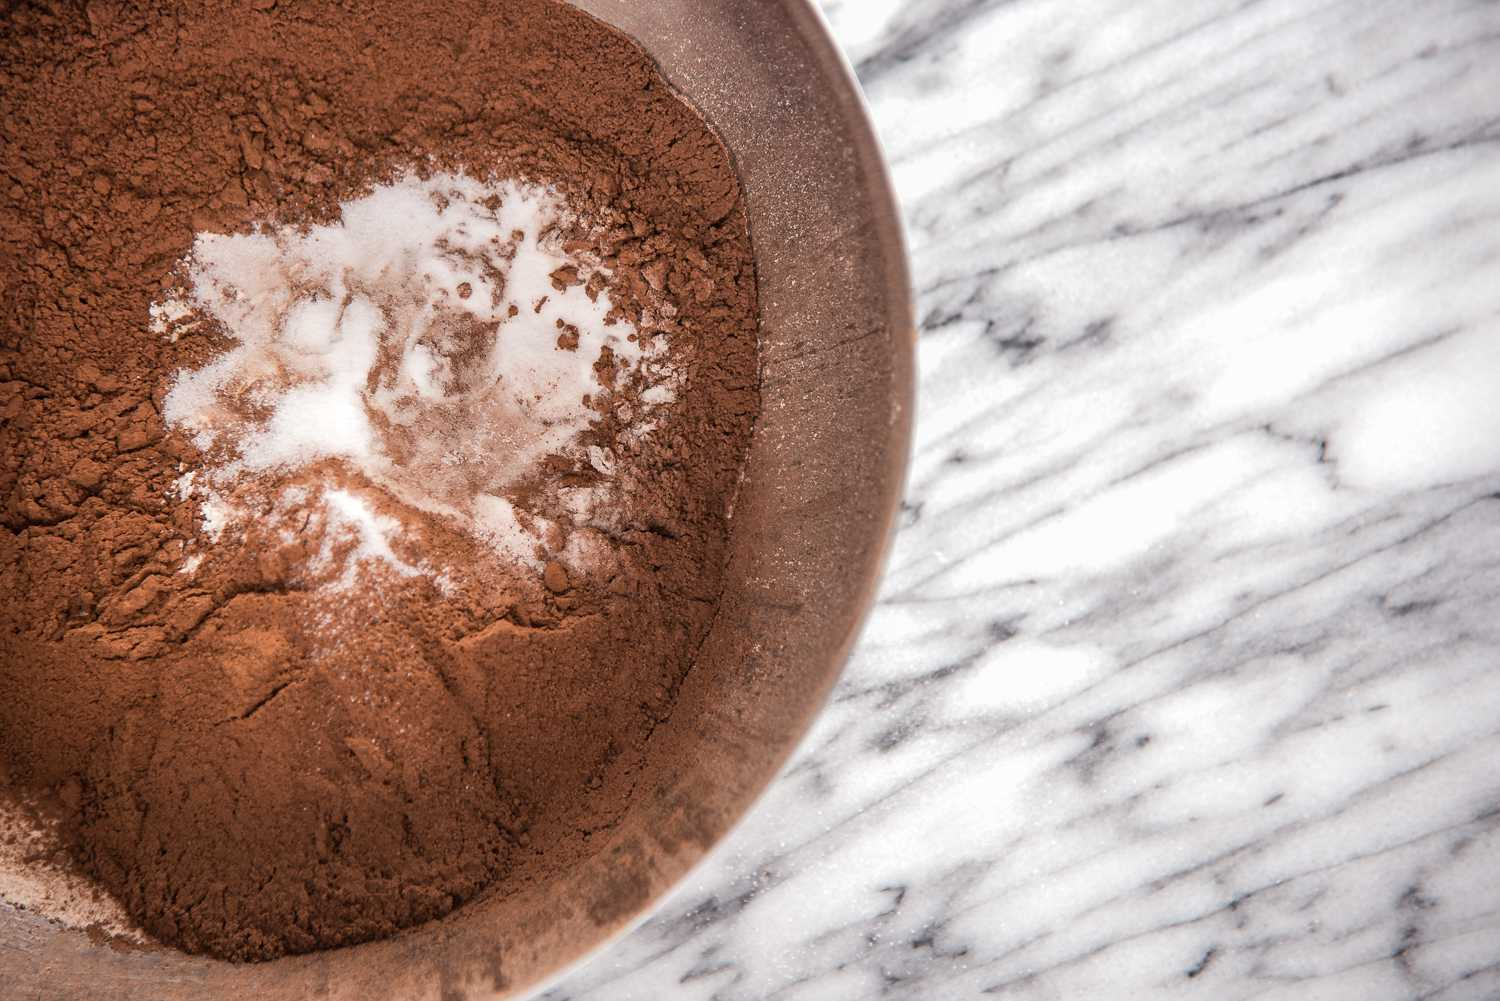 Sift flour, cocoa powder, baking soda and salt together